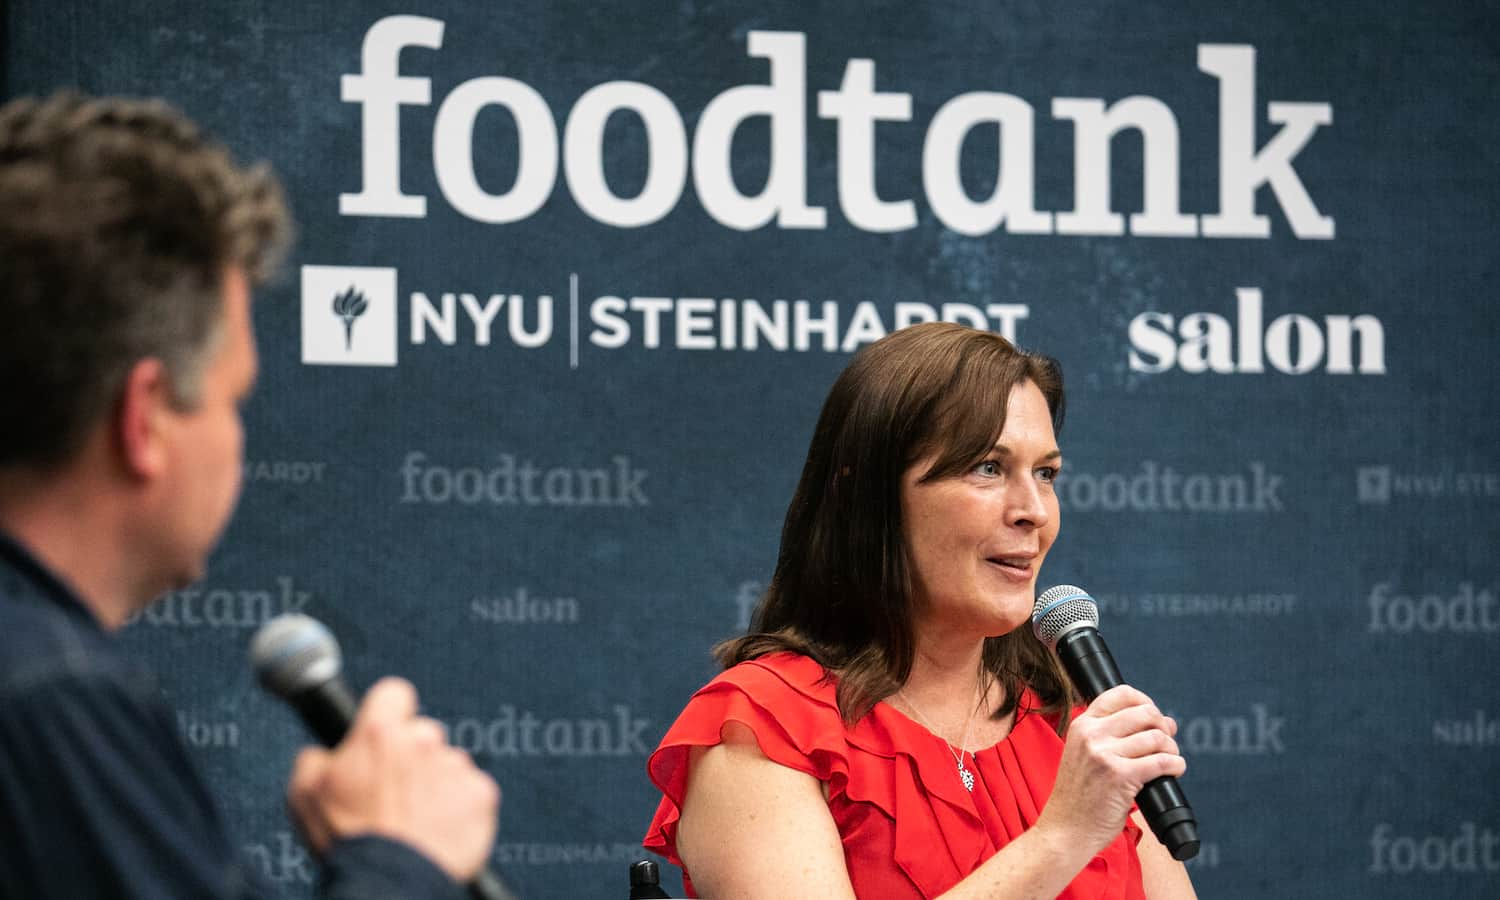 At NYU, Food Tank hosted experts and changemakers for a series of conversations about food equity, access, and affordability in one of the world's busiest cities.